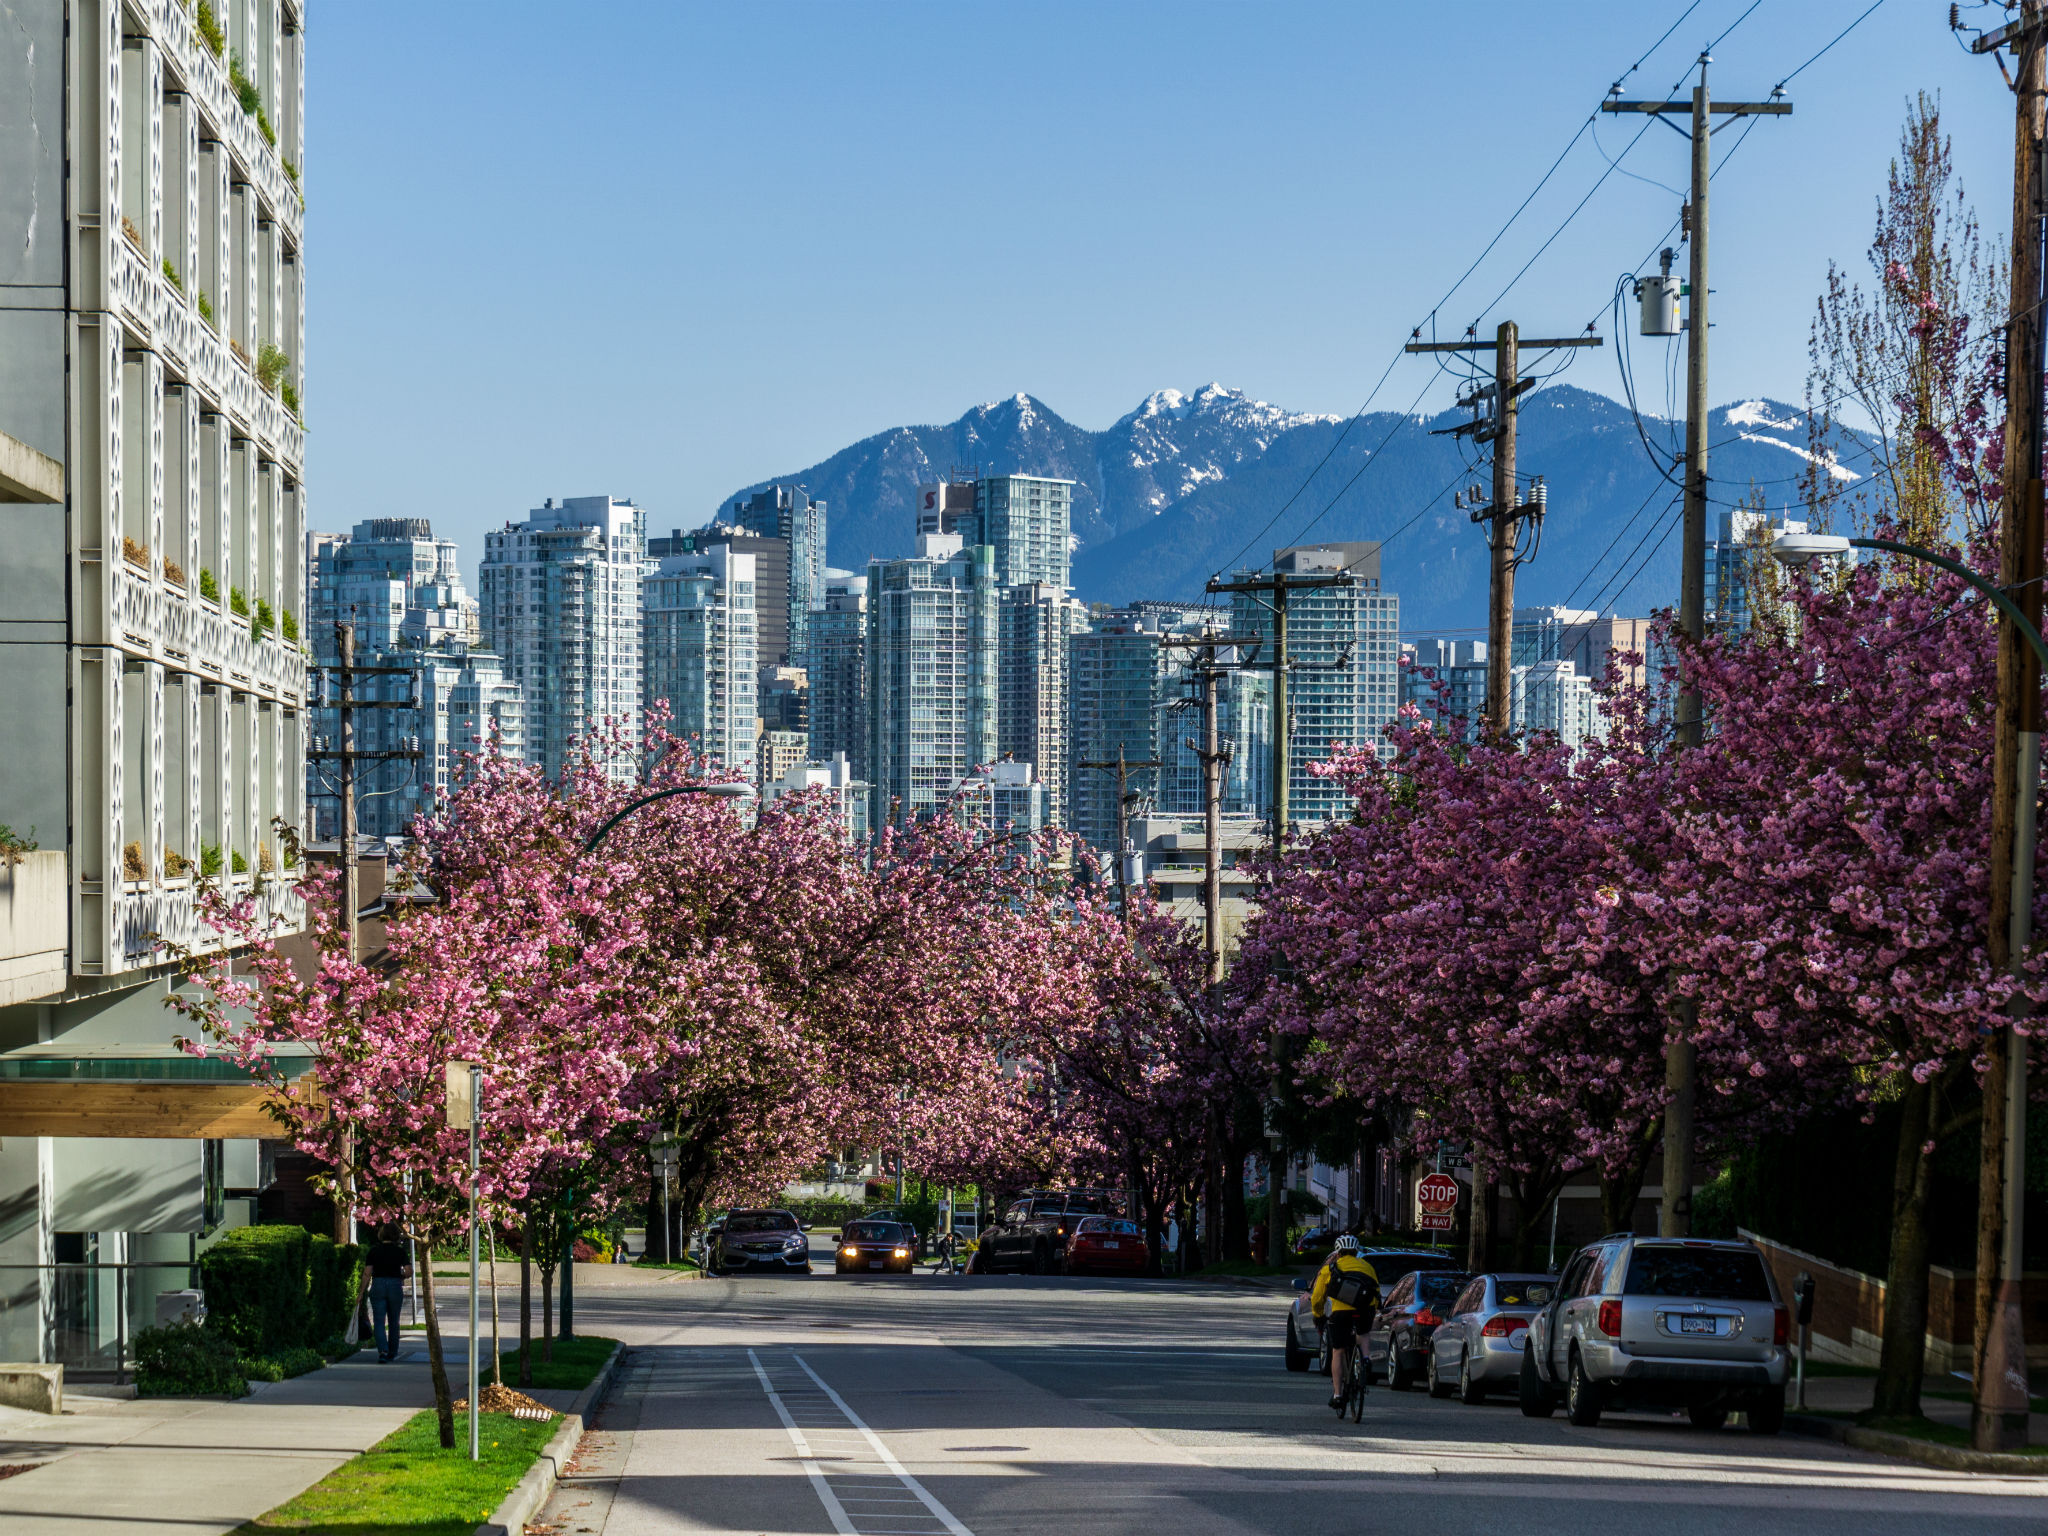 Cherry blossom in Vancouver, Canada